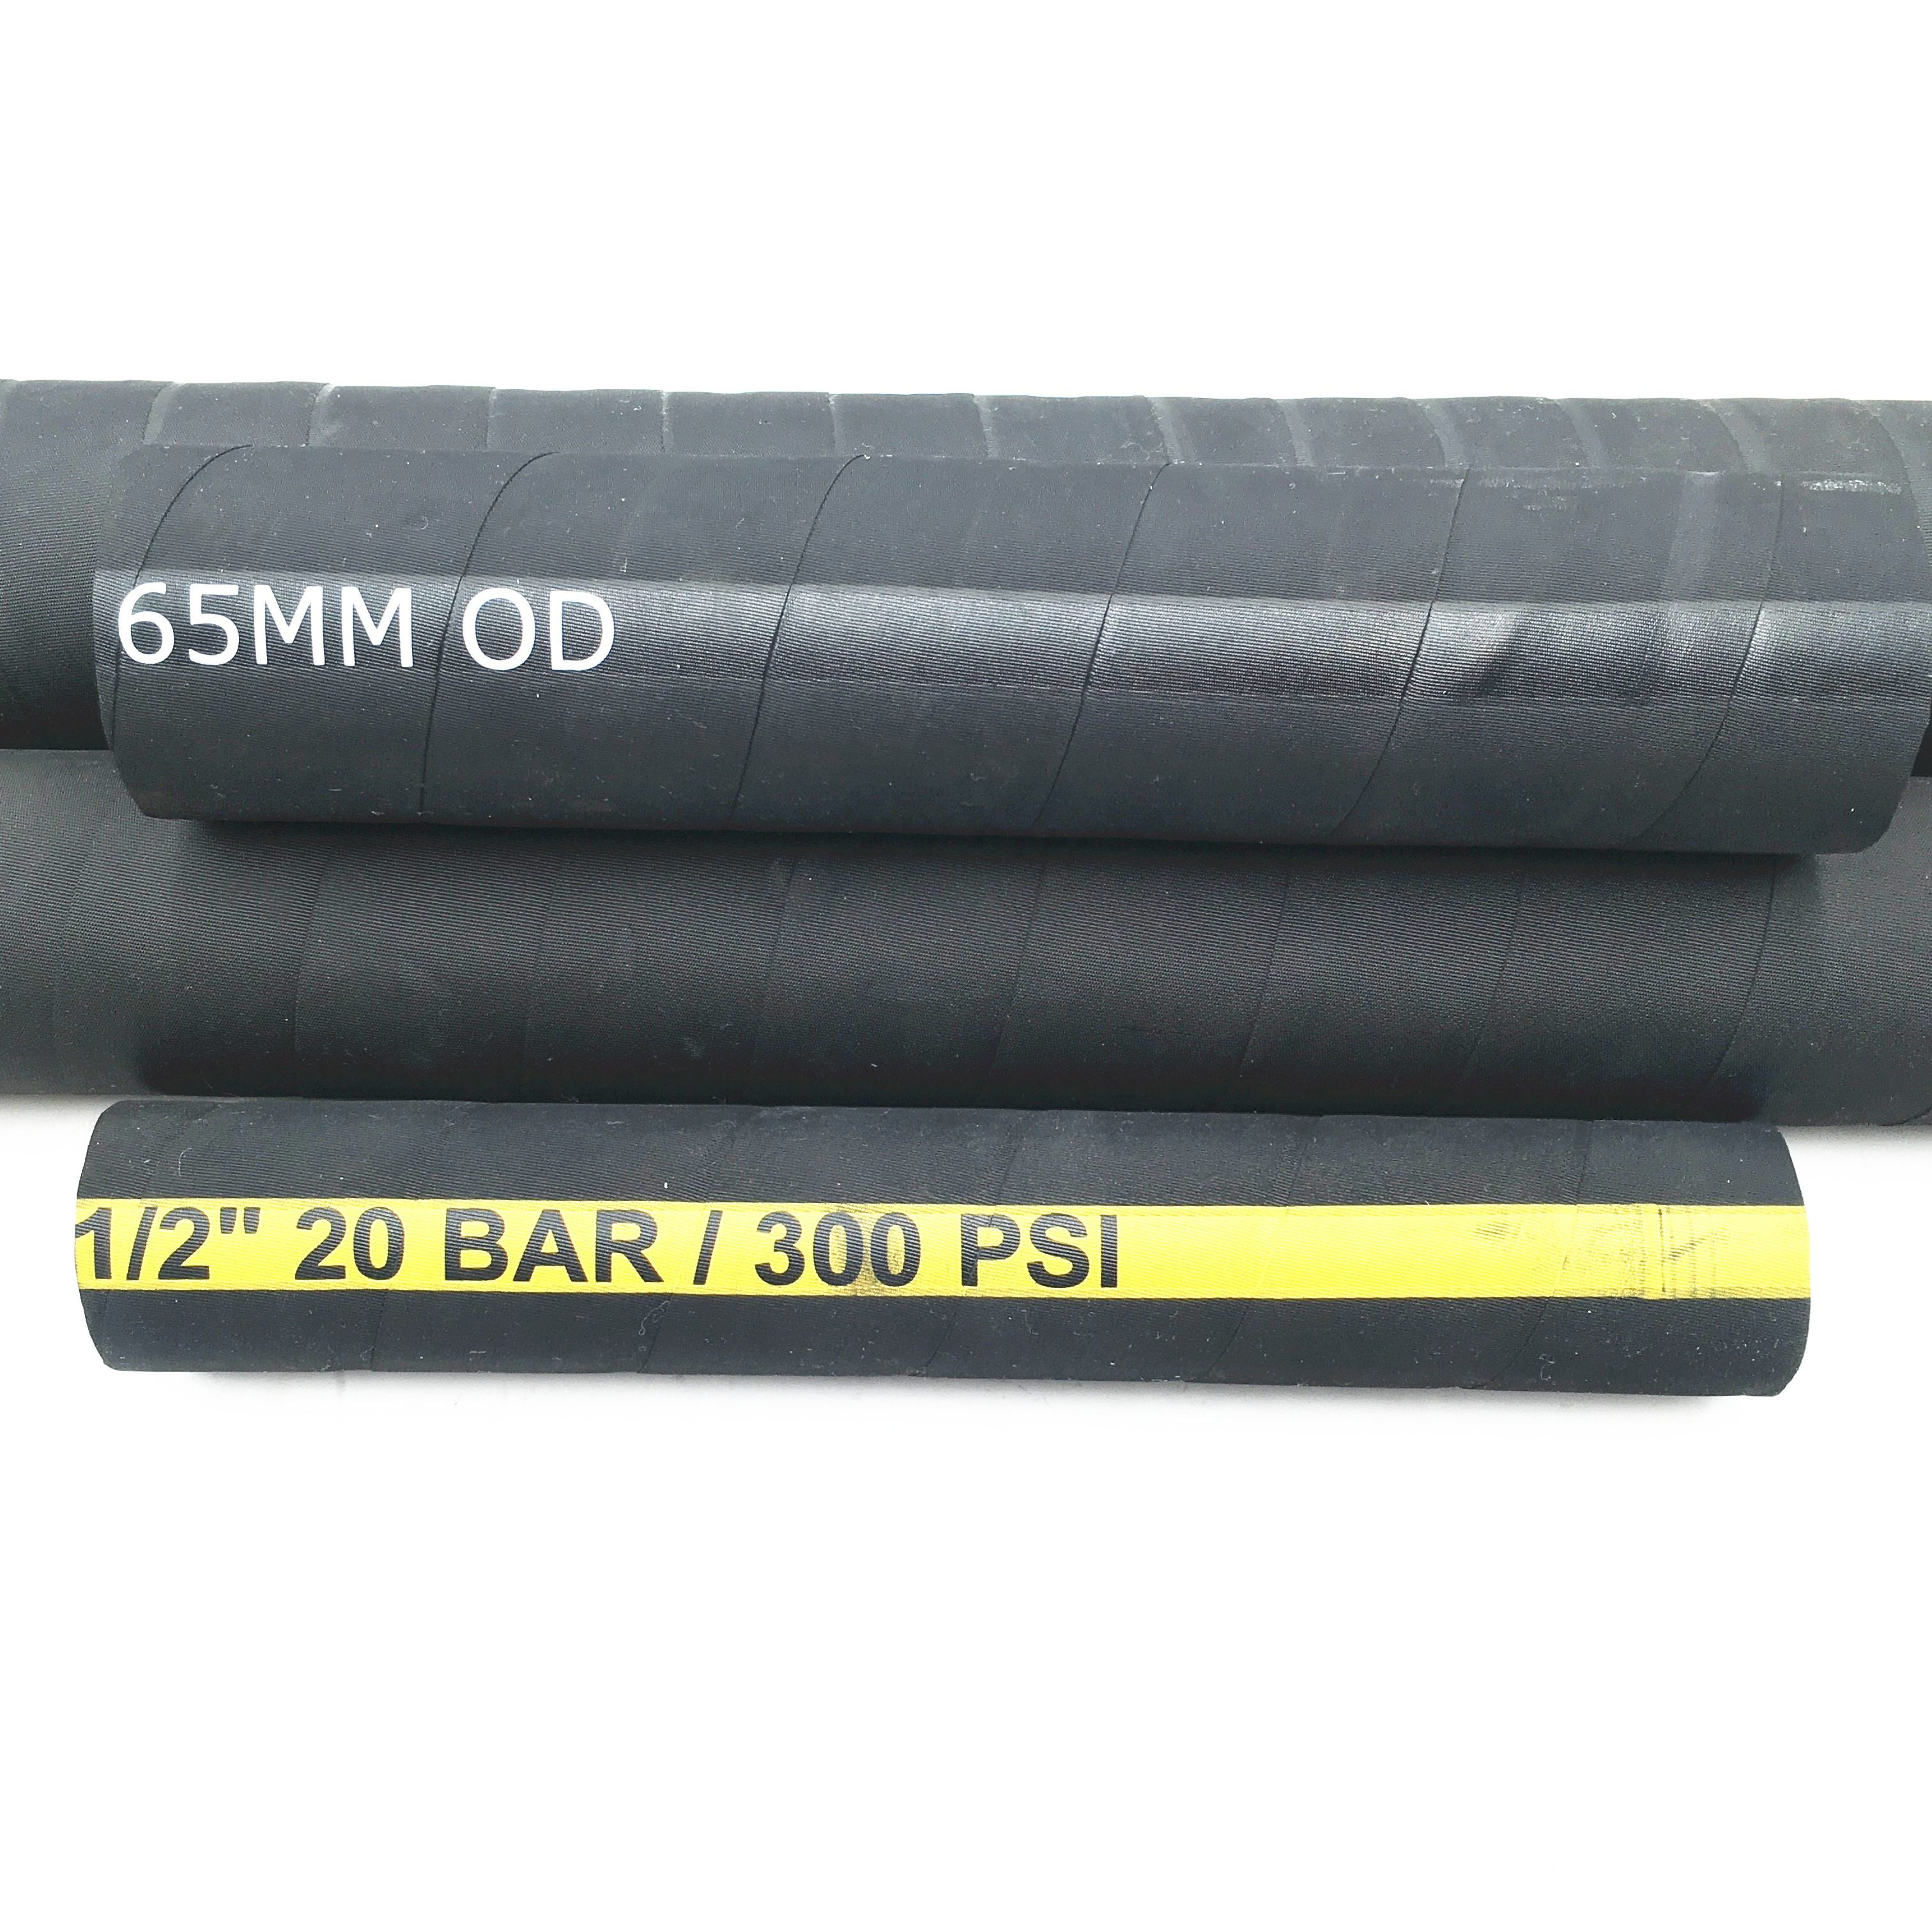 Water Wrapped Cover Air Hose EPDM/SBR Blend